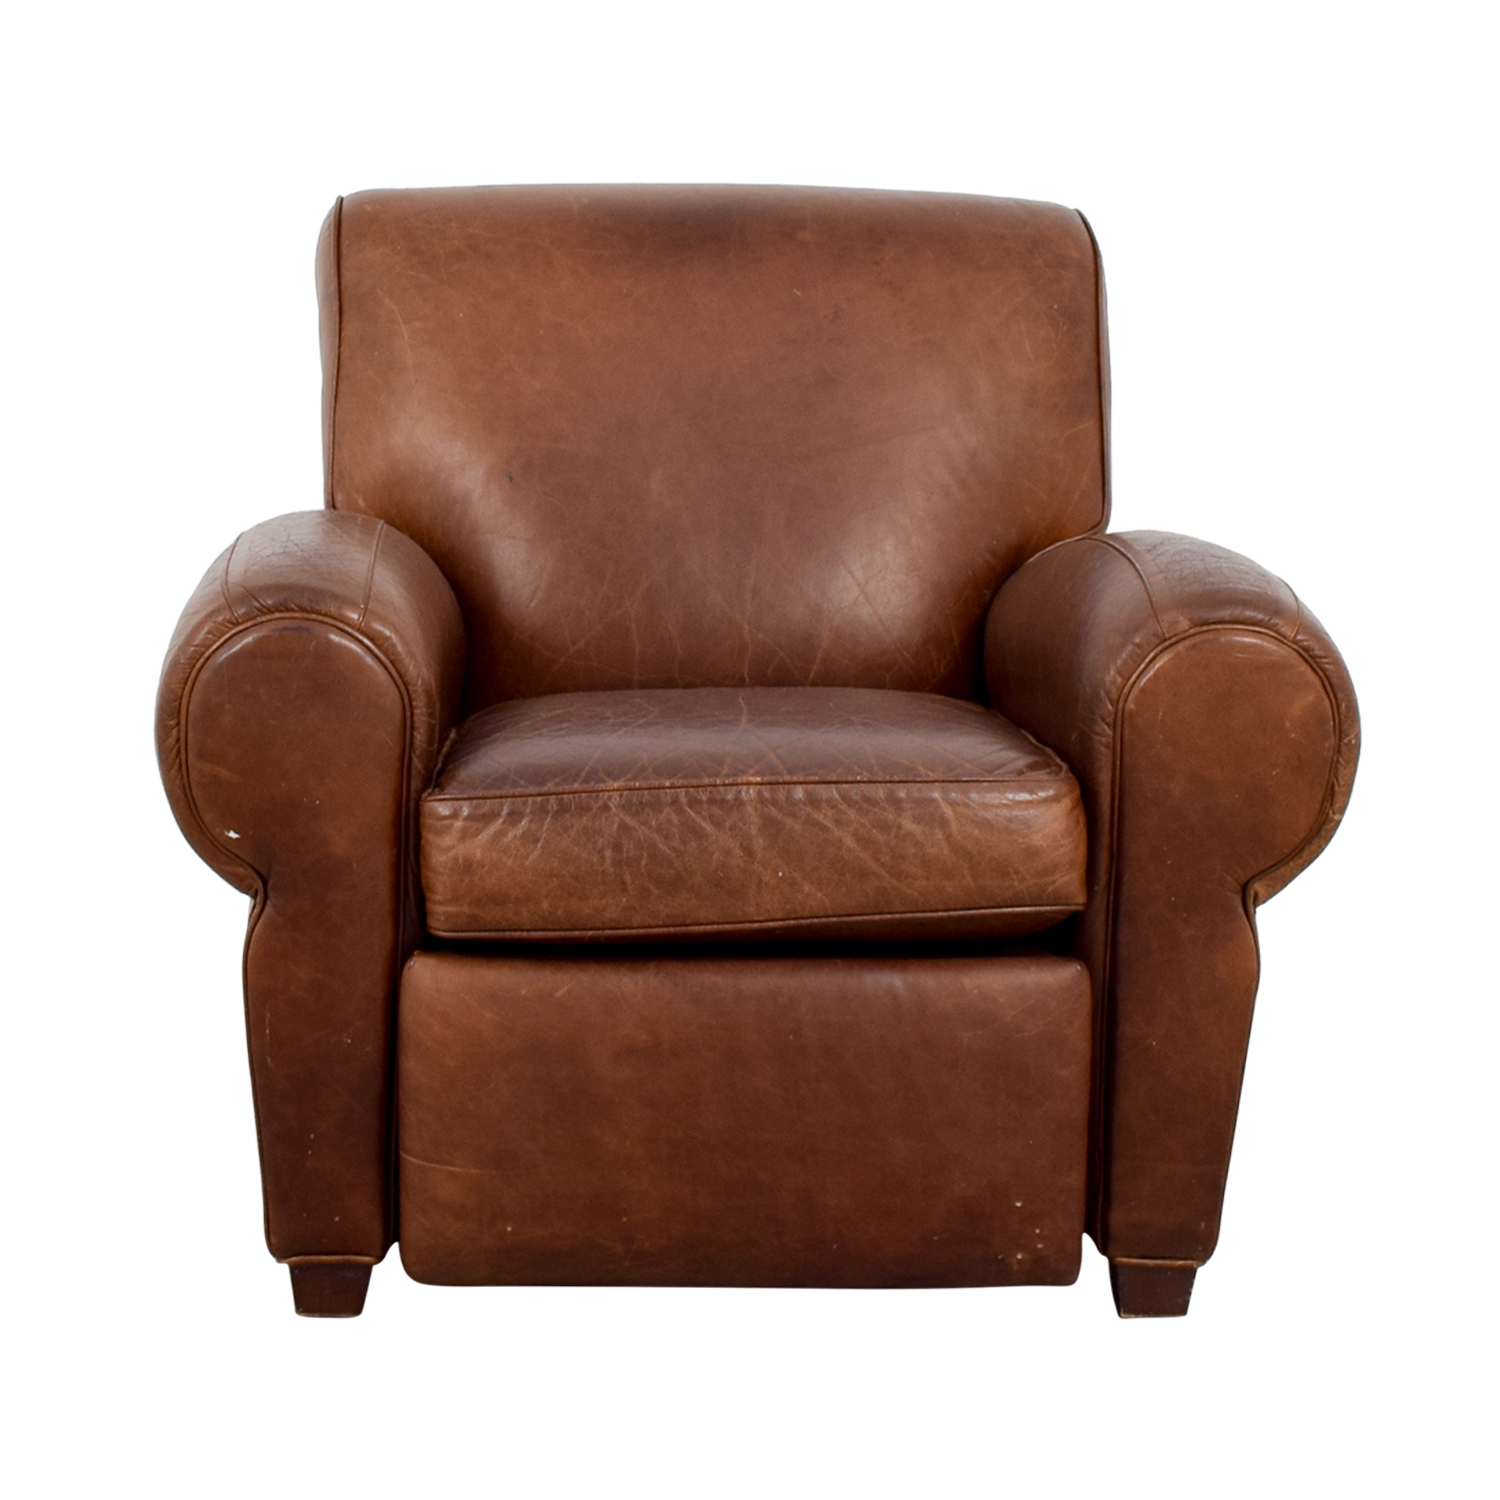 Astonishing 54 Off Pottery Barn Pottery Barn Manhattan Brown Leather Club Chair Chairs Pdpeps Interior Chair Design Pdpepsorg